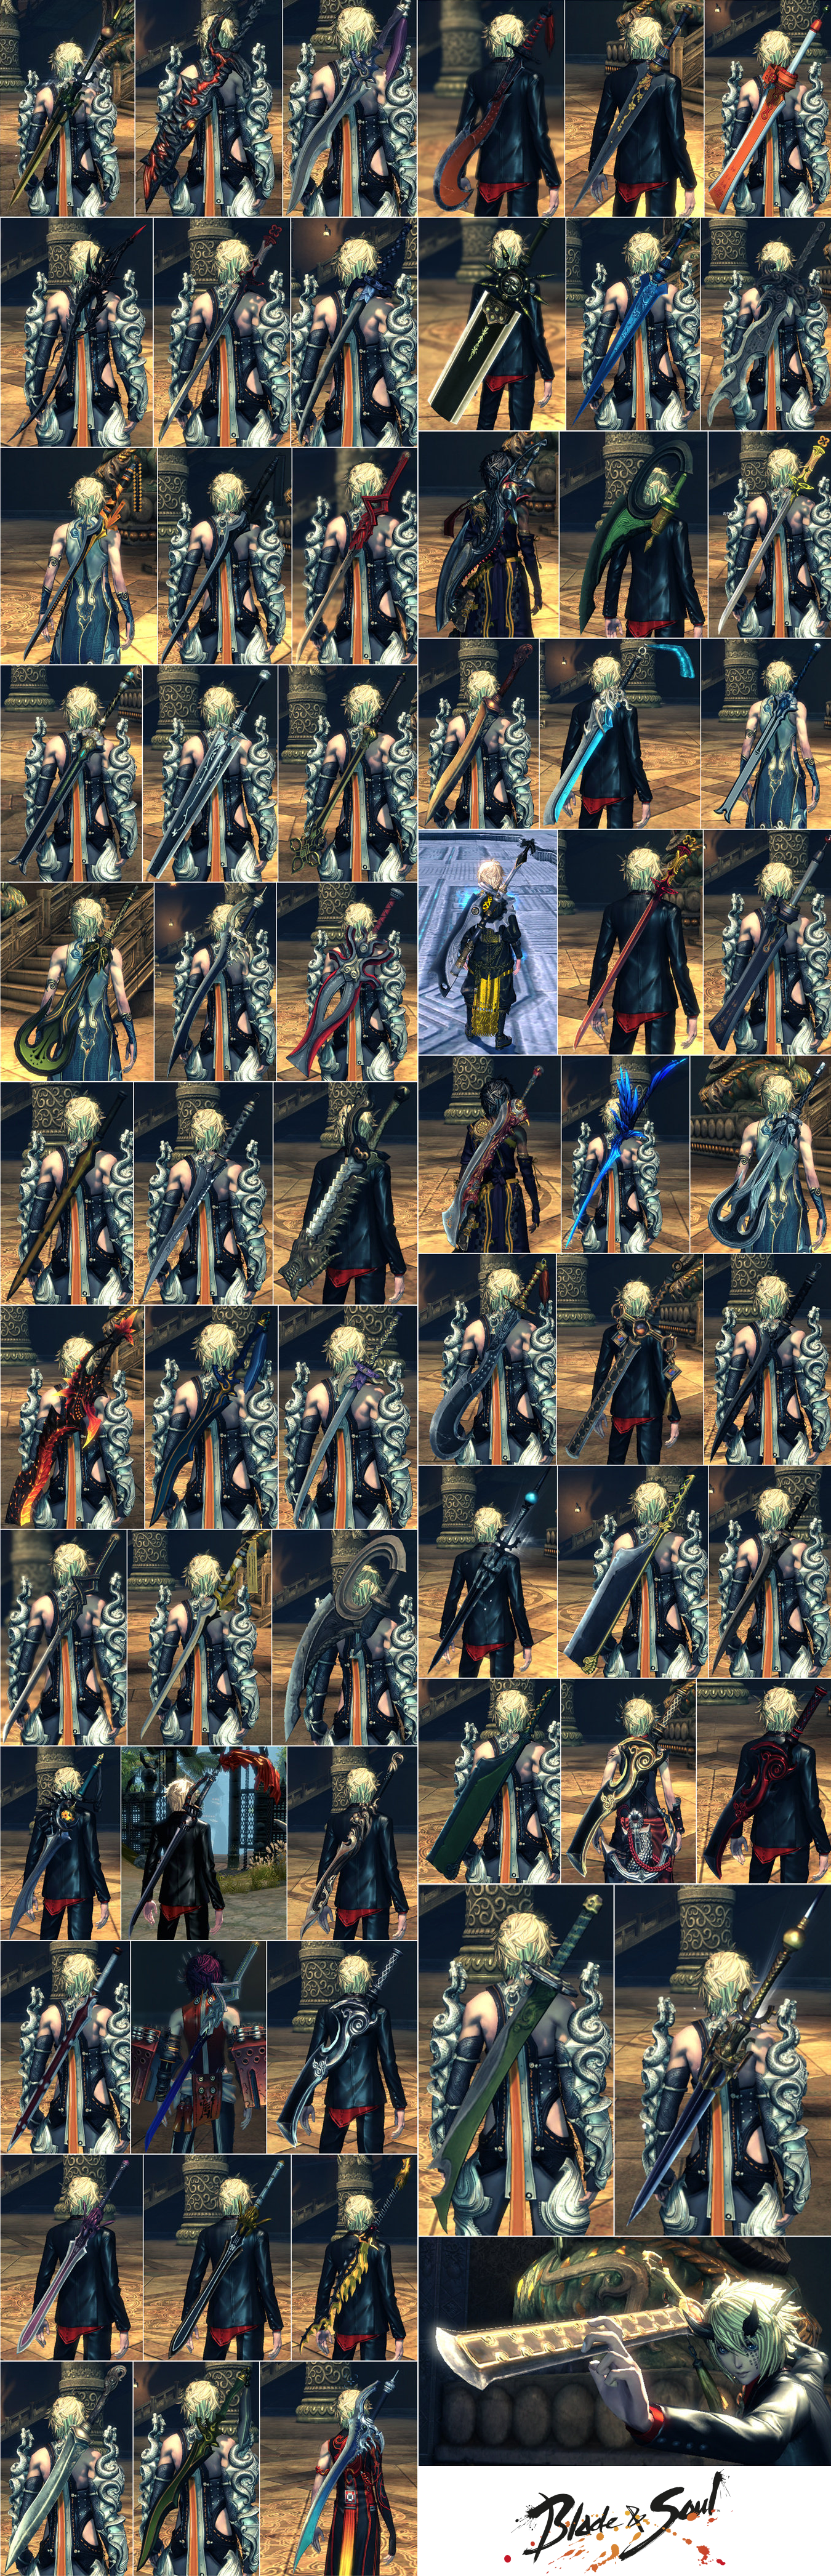 Blade-Soul-Blade-designs-of-the-game